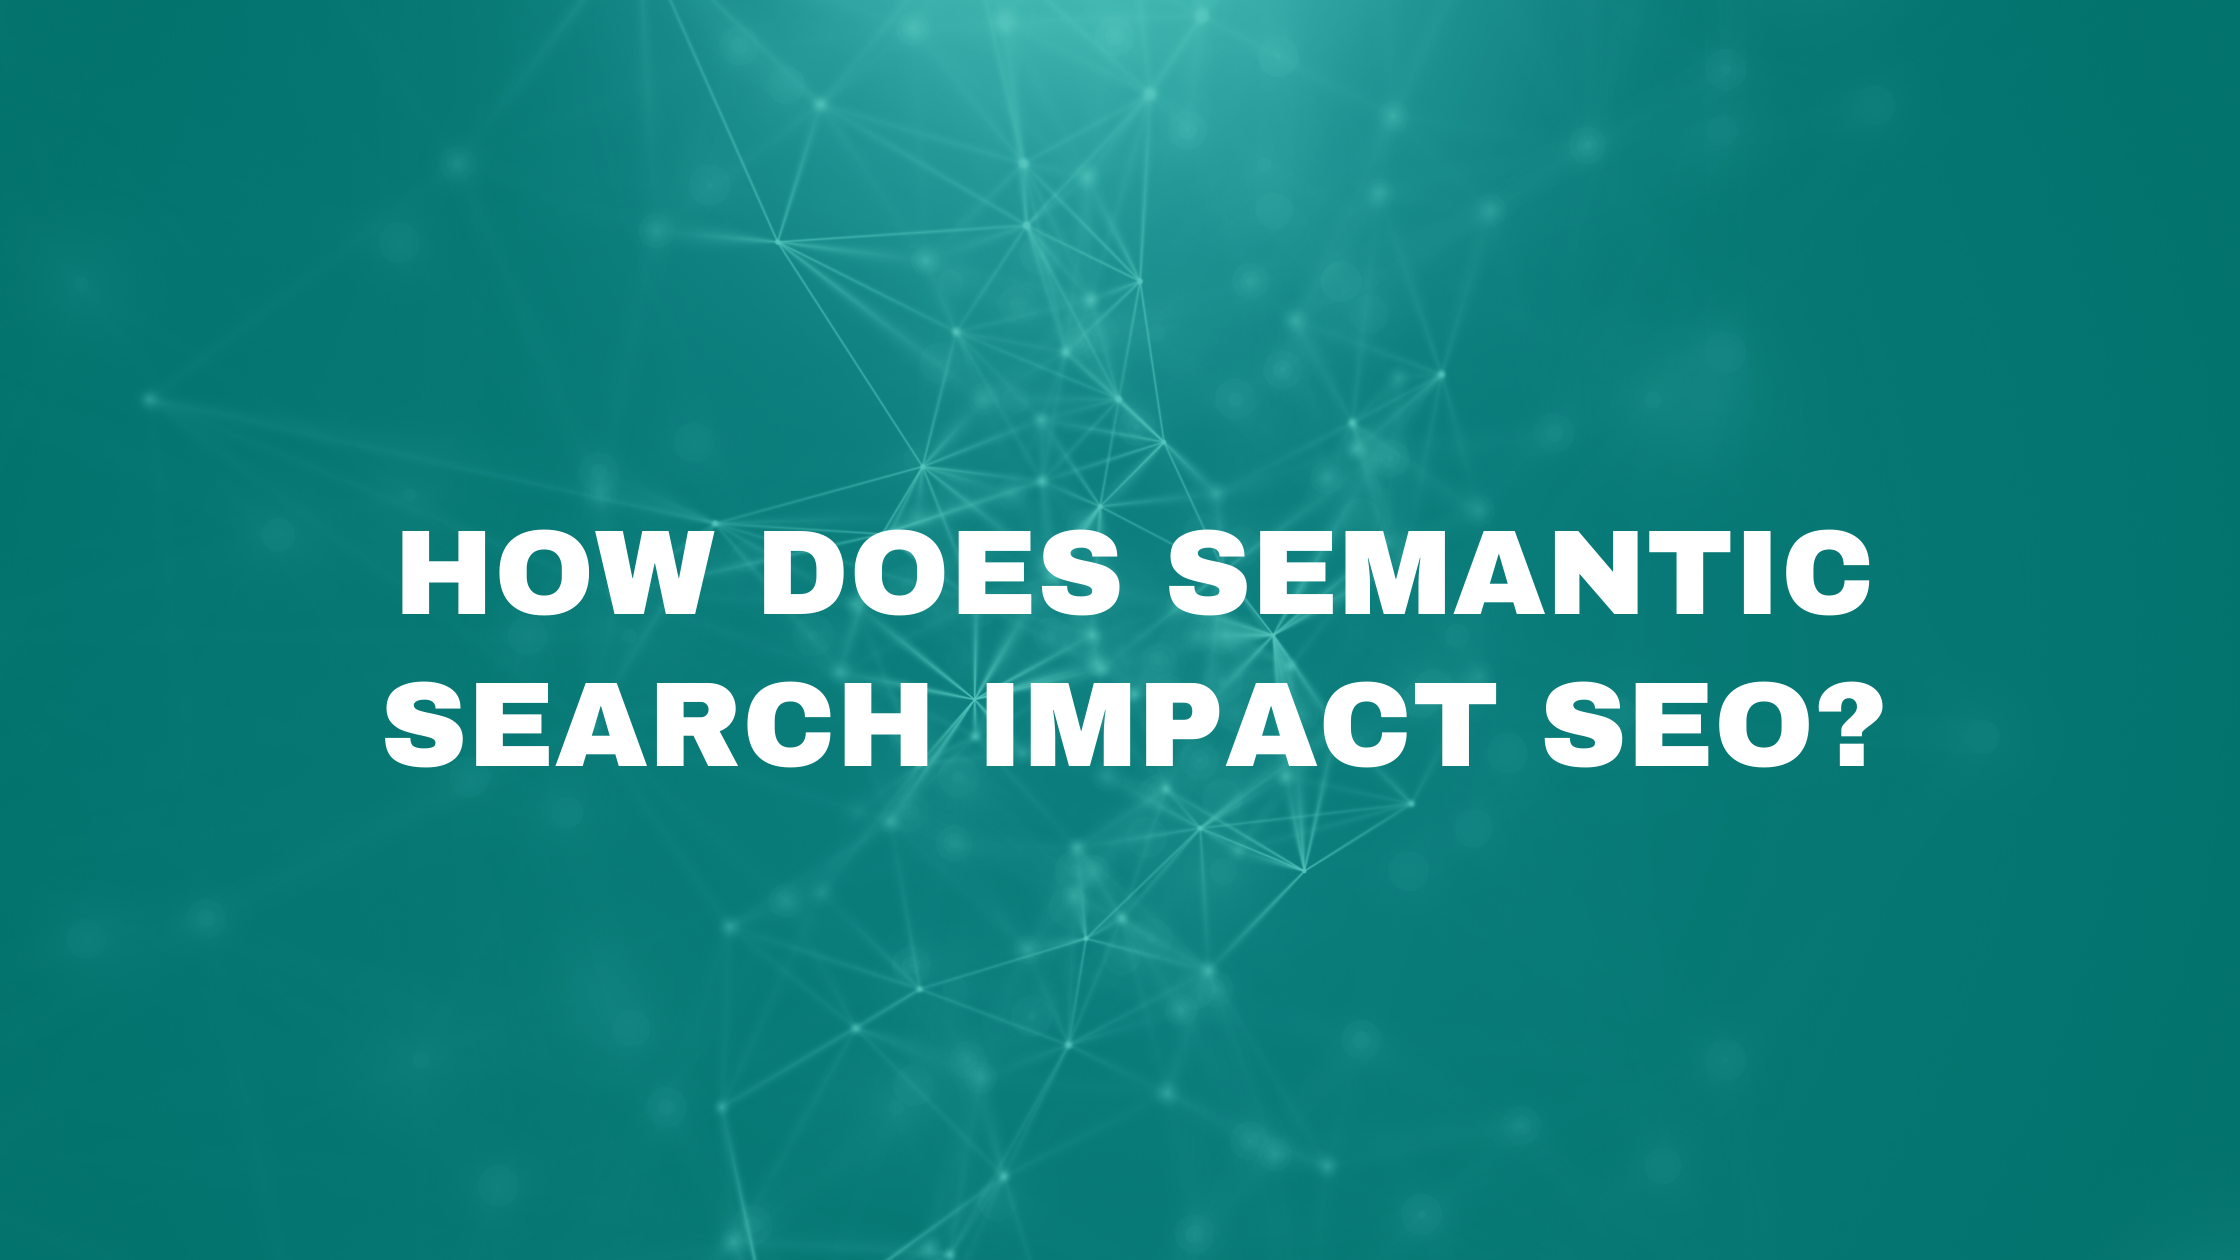 HOW DOES SEMANTIC SEARCH IMPACT SEO